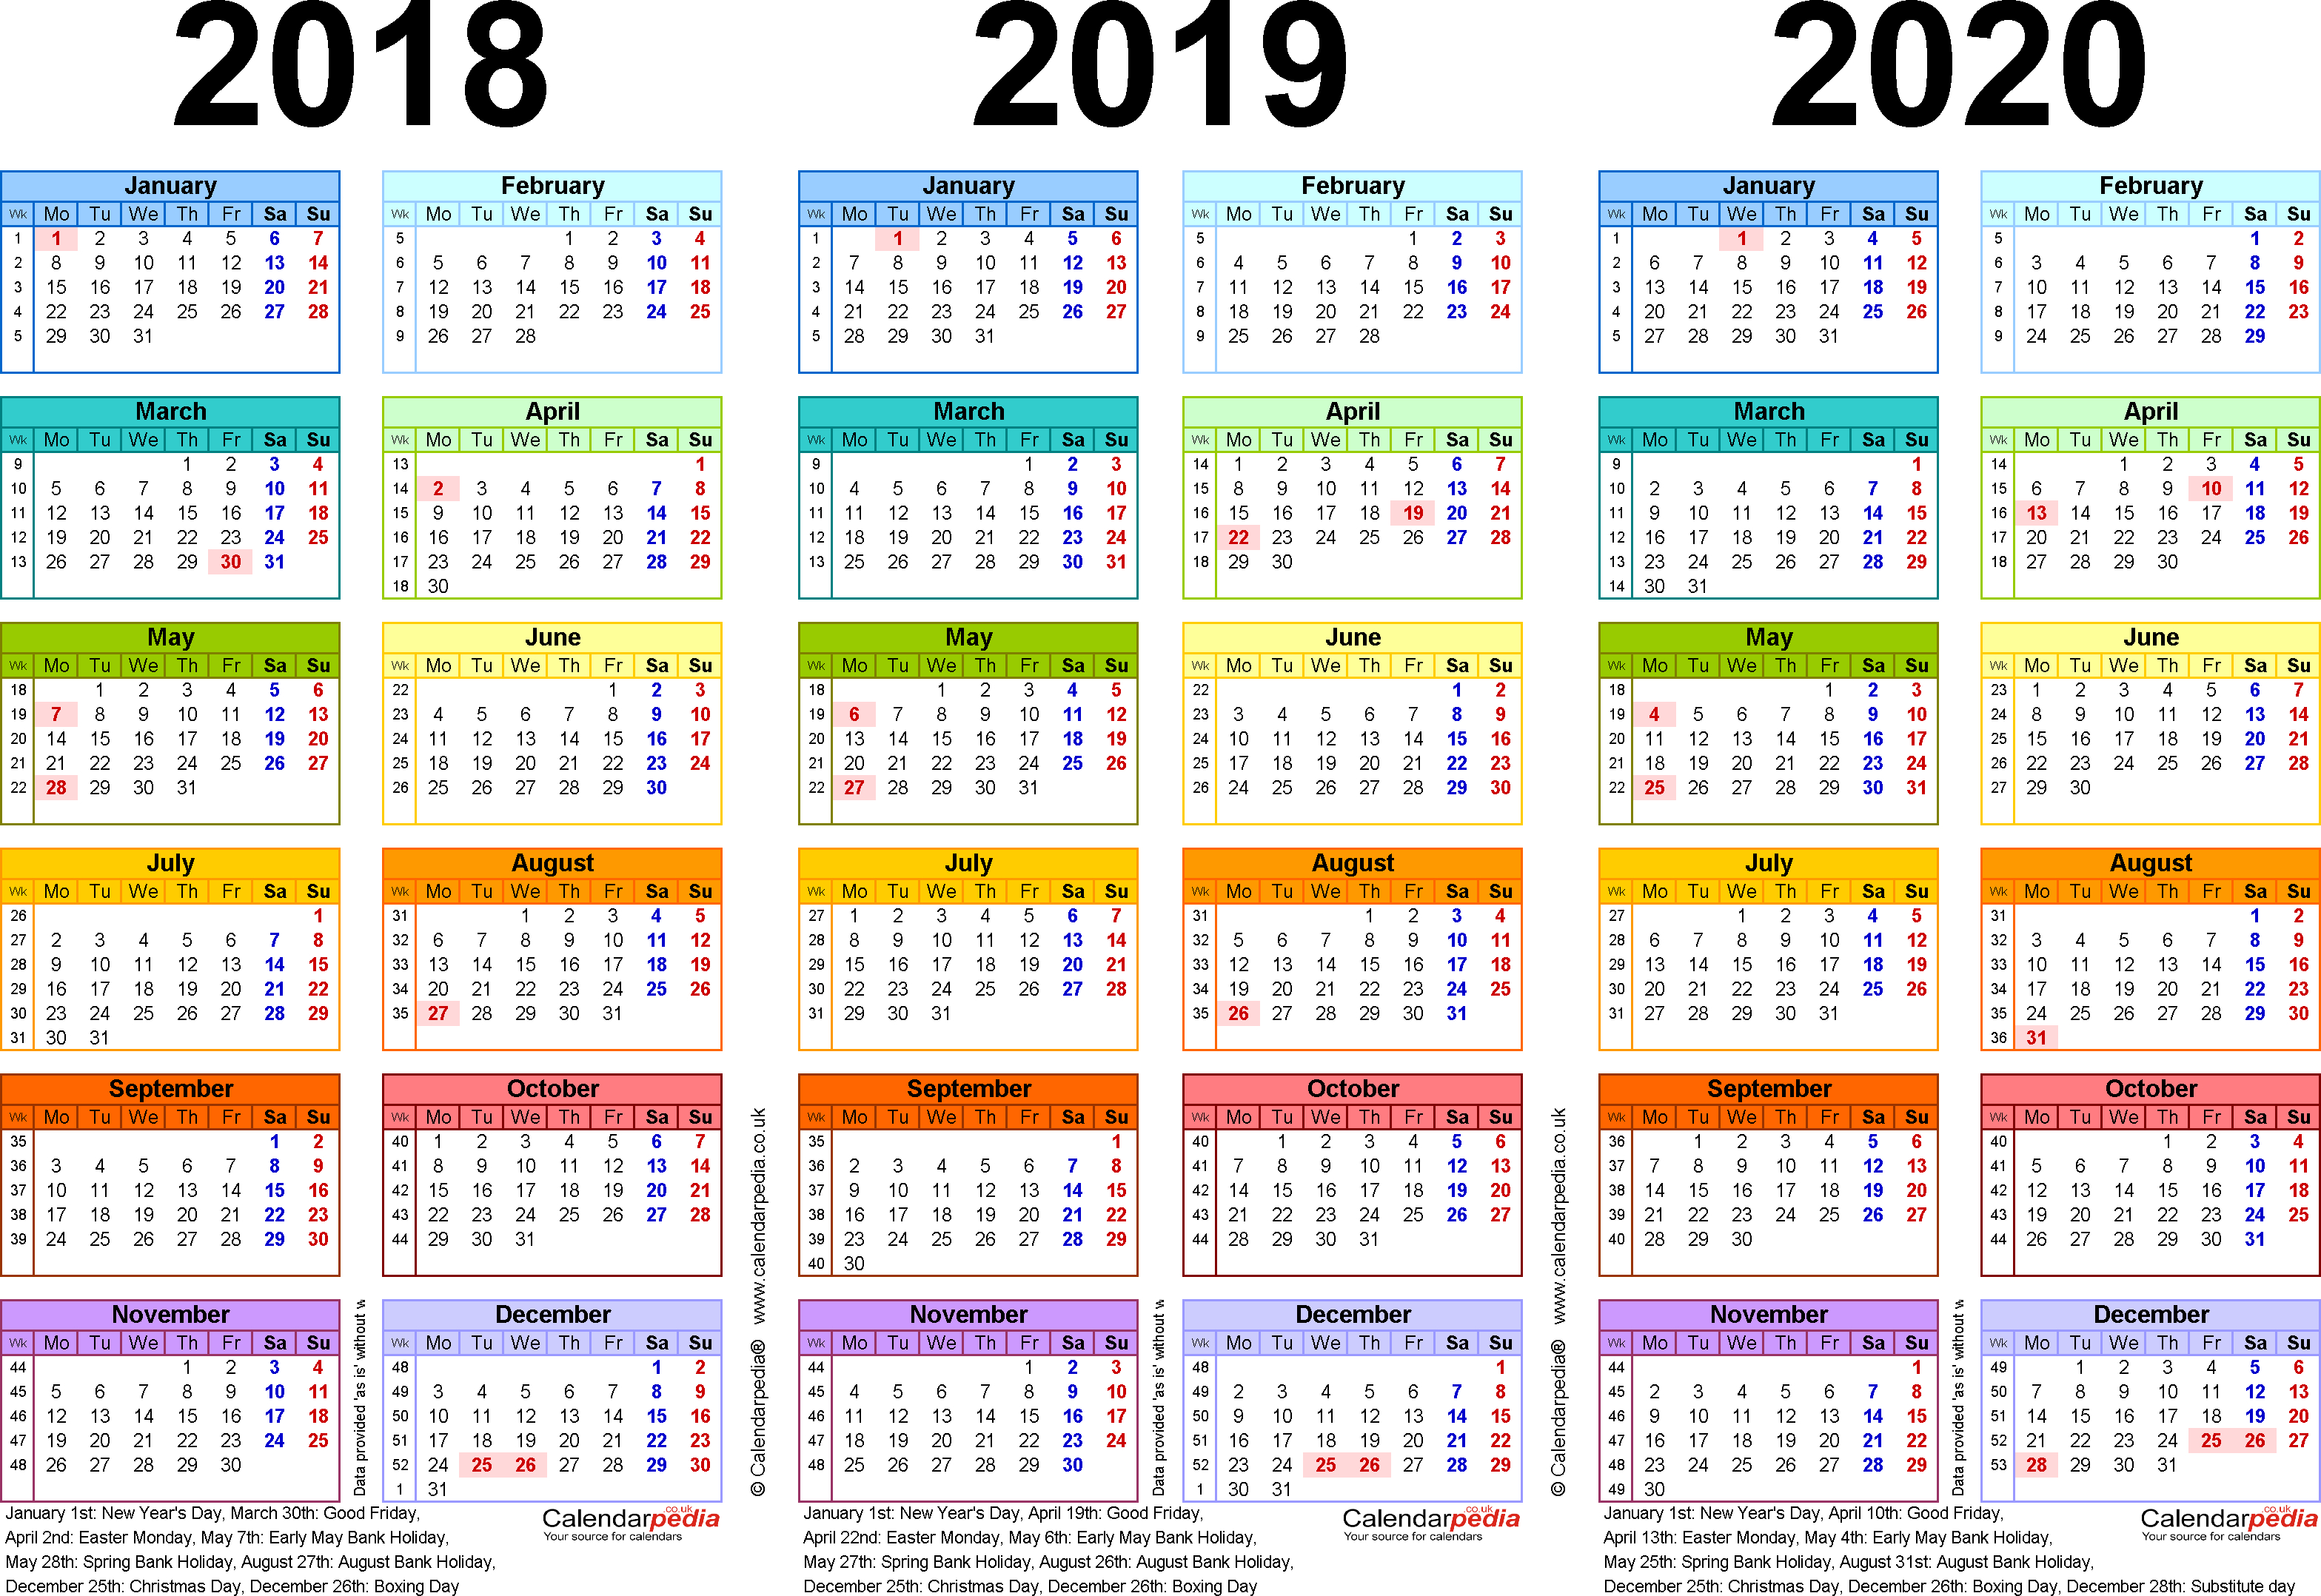 2020 Payroll Calendar  Neyar.kristinejaynephotography pertaining to Uc Berkeley Biweekly Pay Calendar 2020